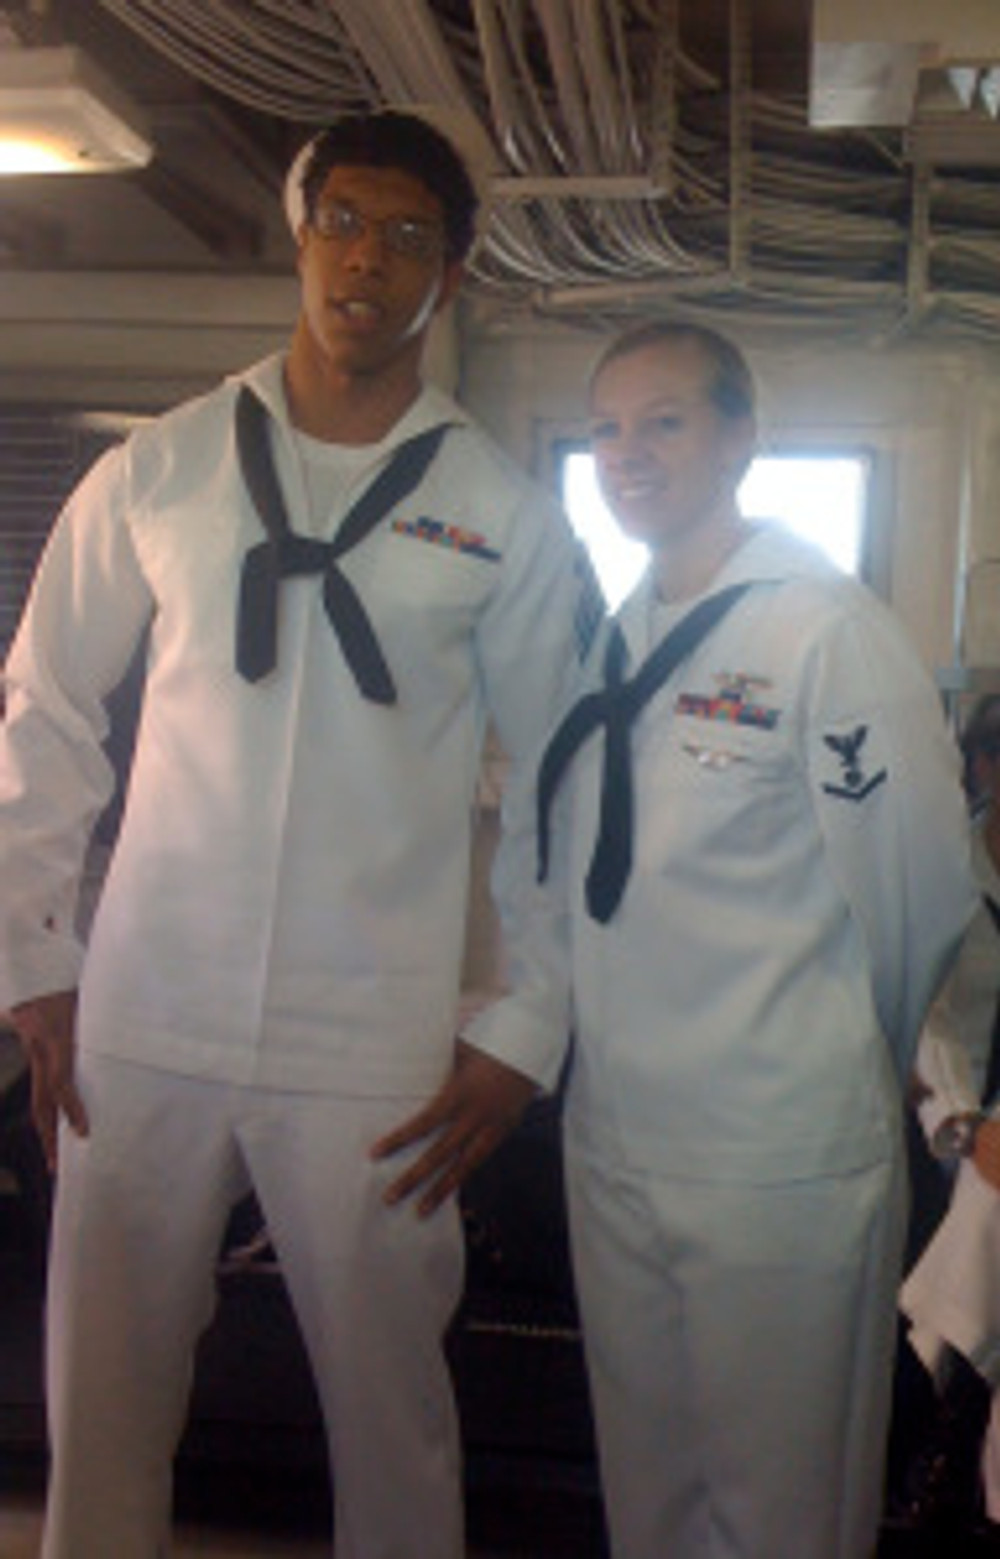 Maurice & Jaime  - on board the USS Reagan